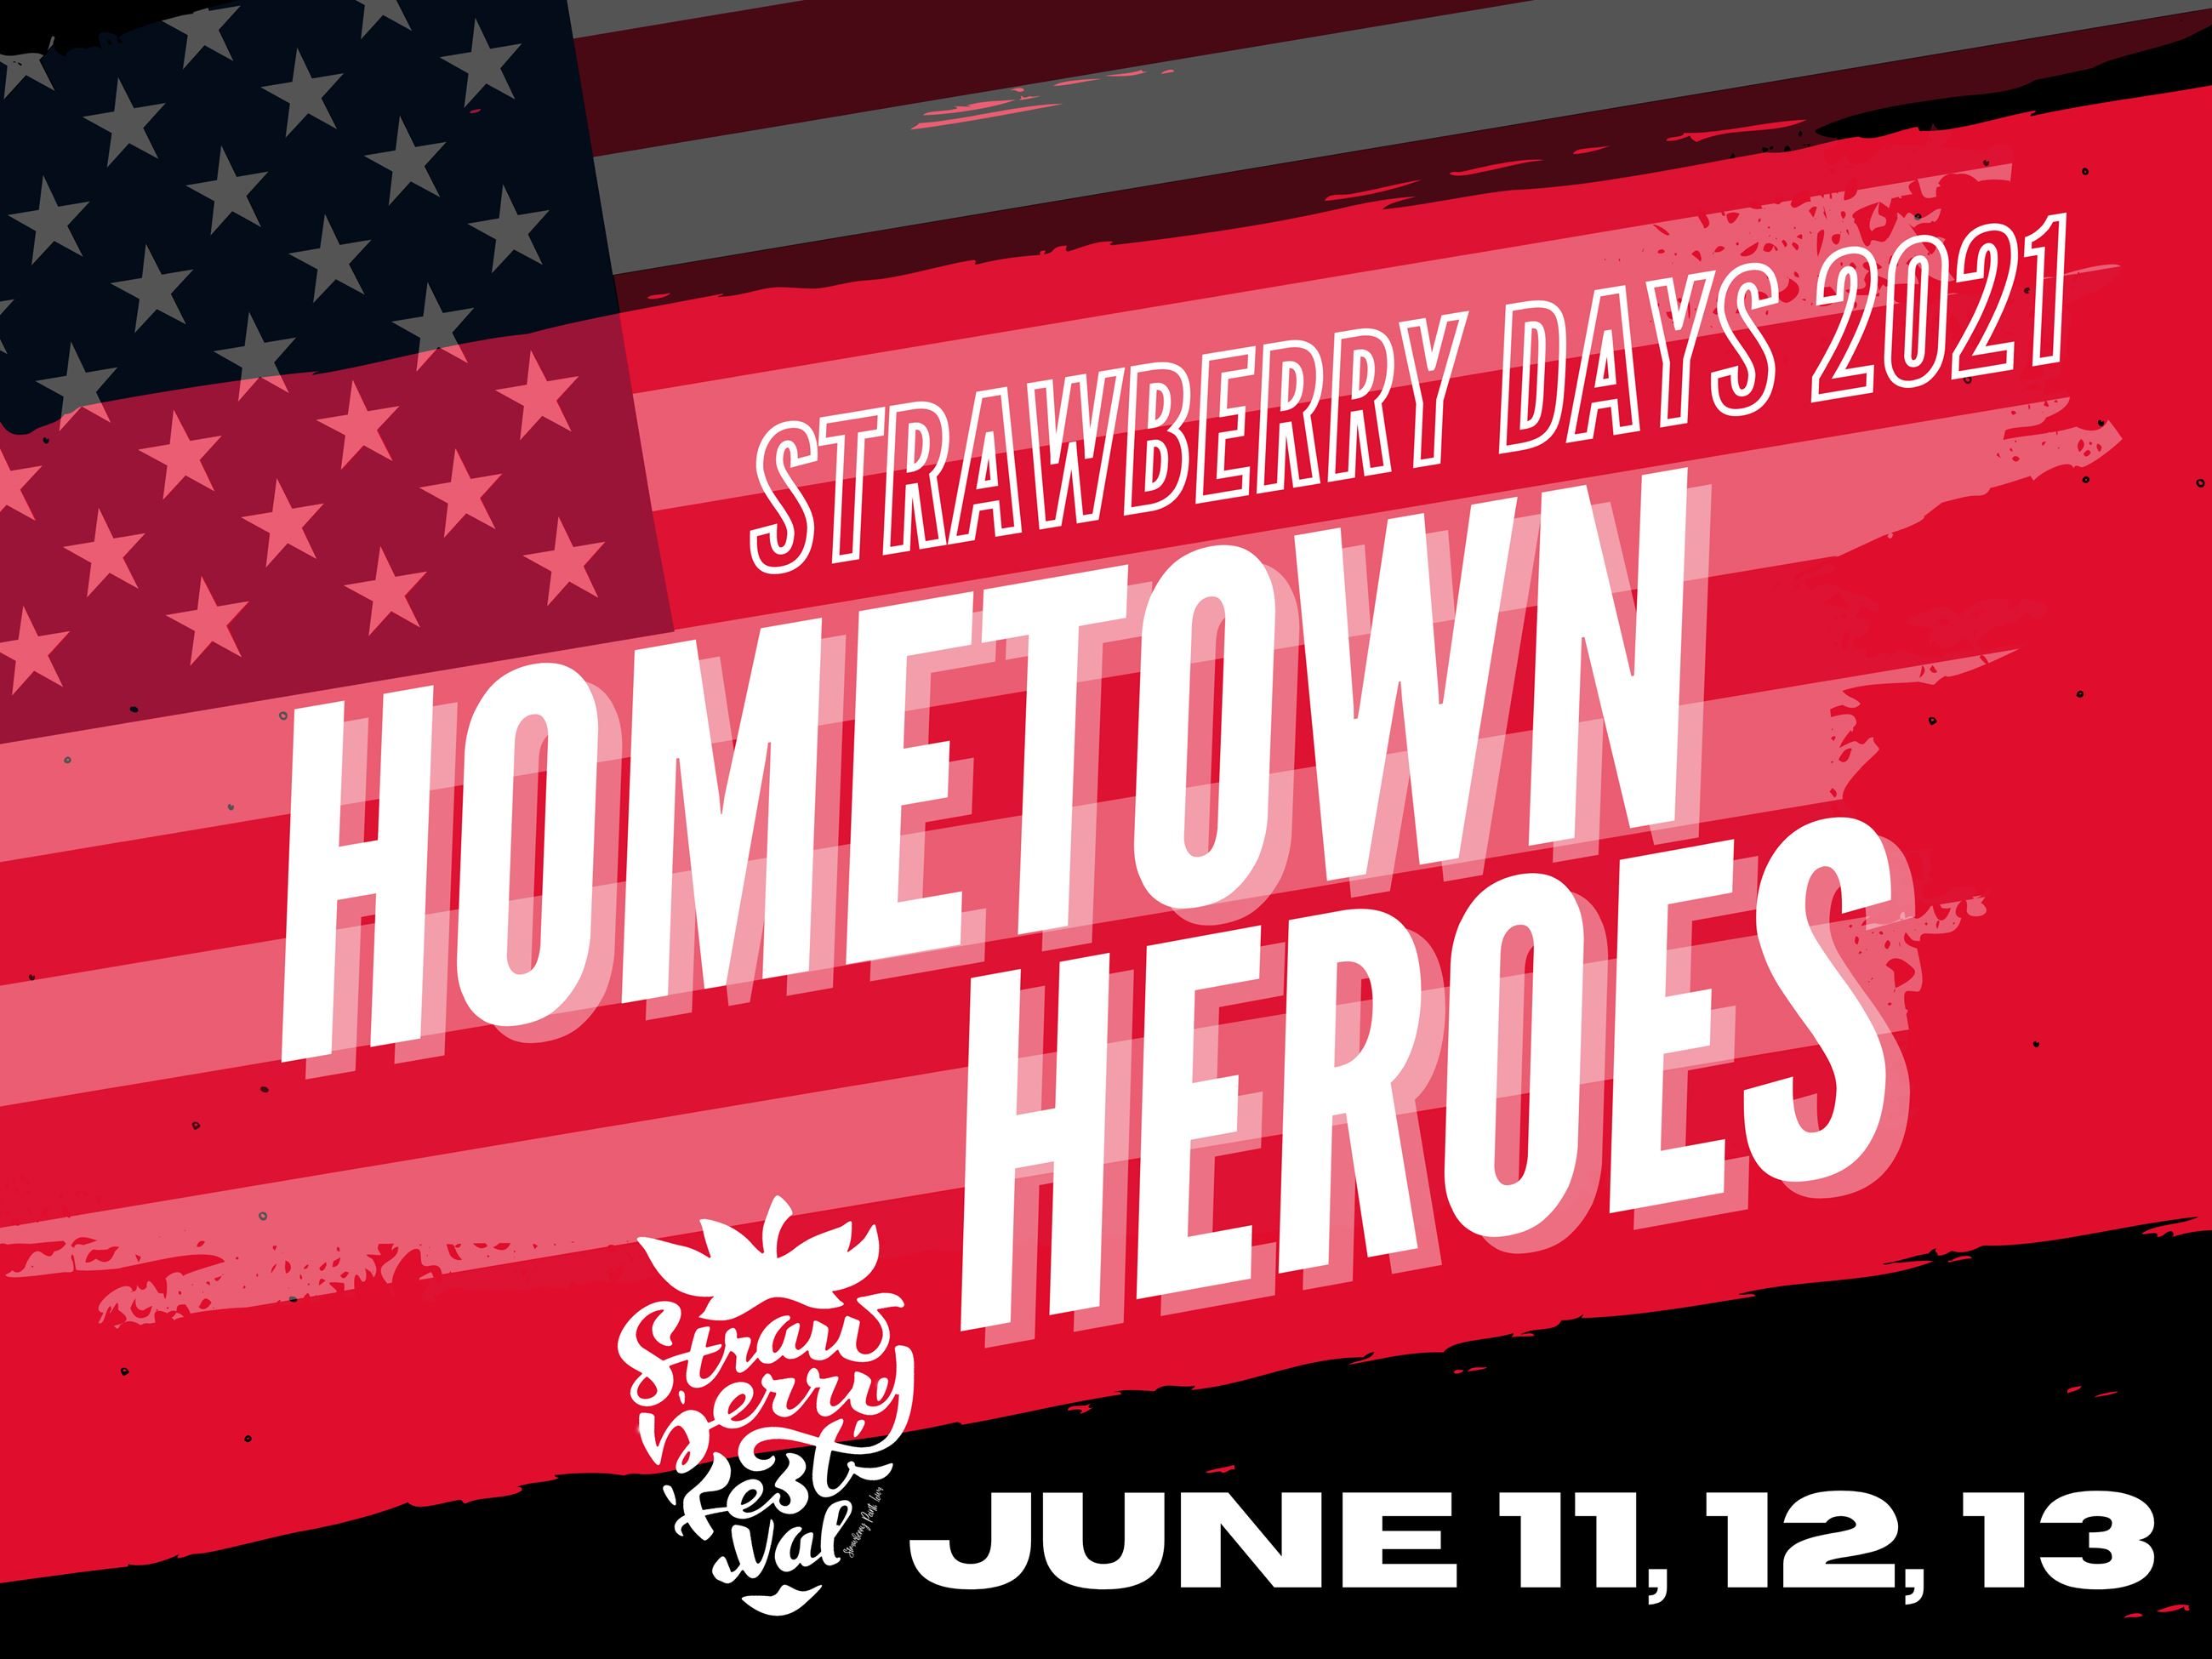 Strawberry Days Festival 2021 Theme Hometown Heroes June 11, 12, and 13